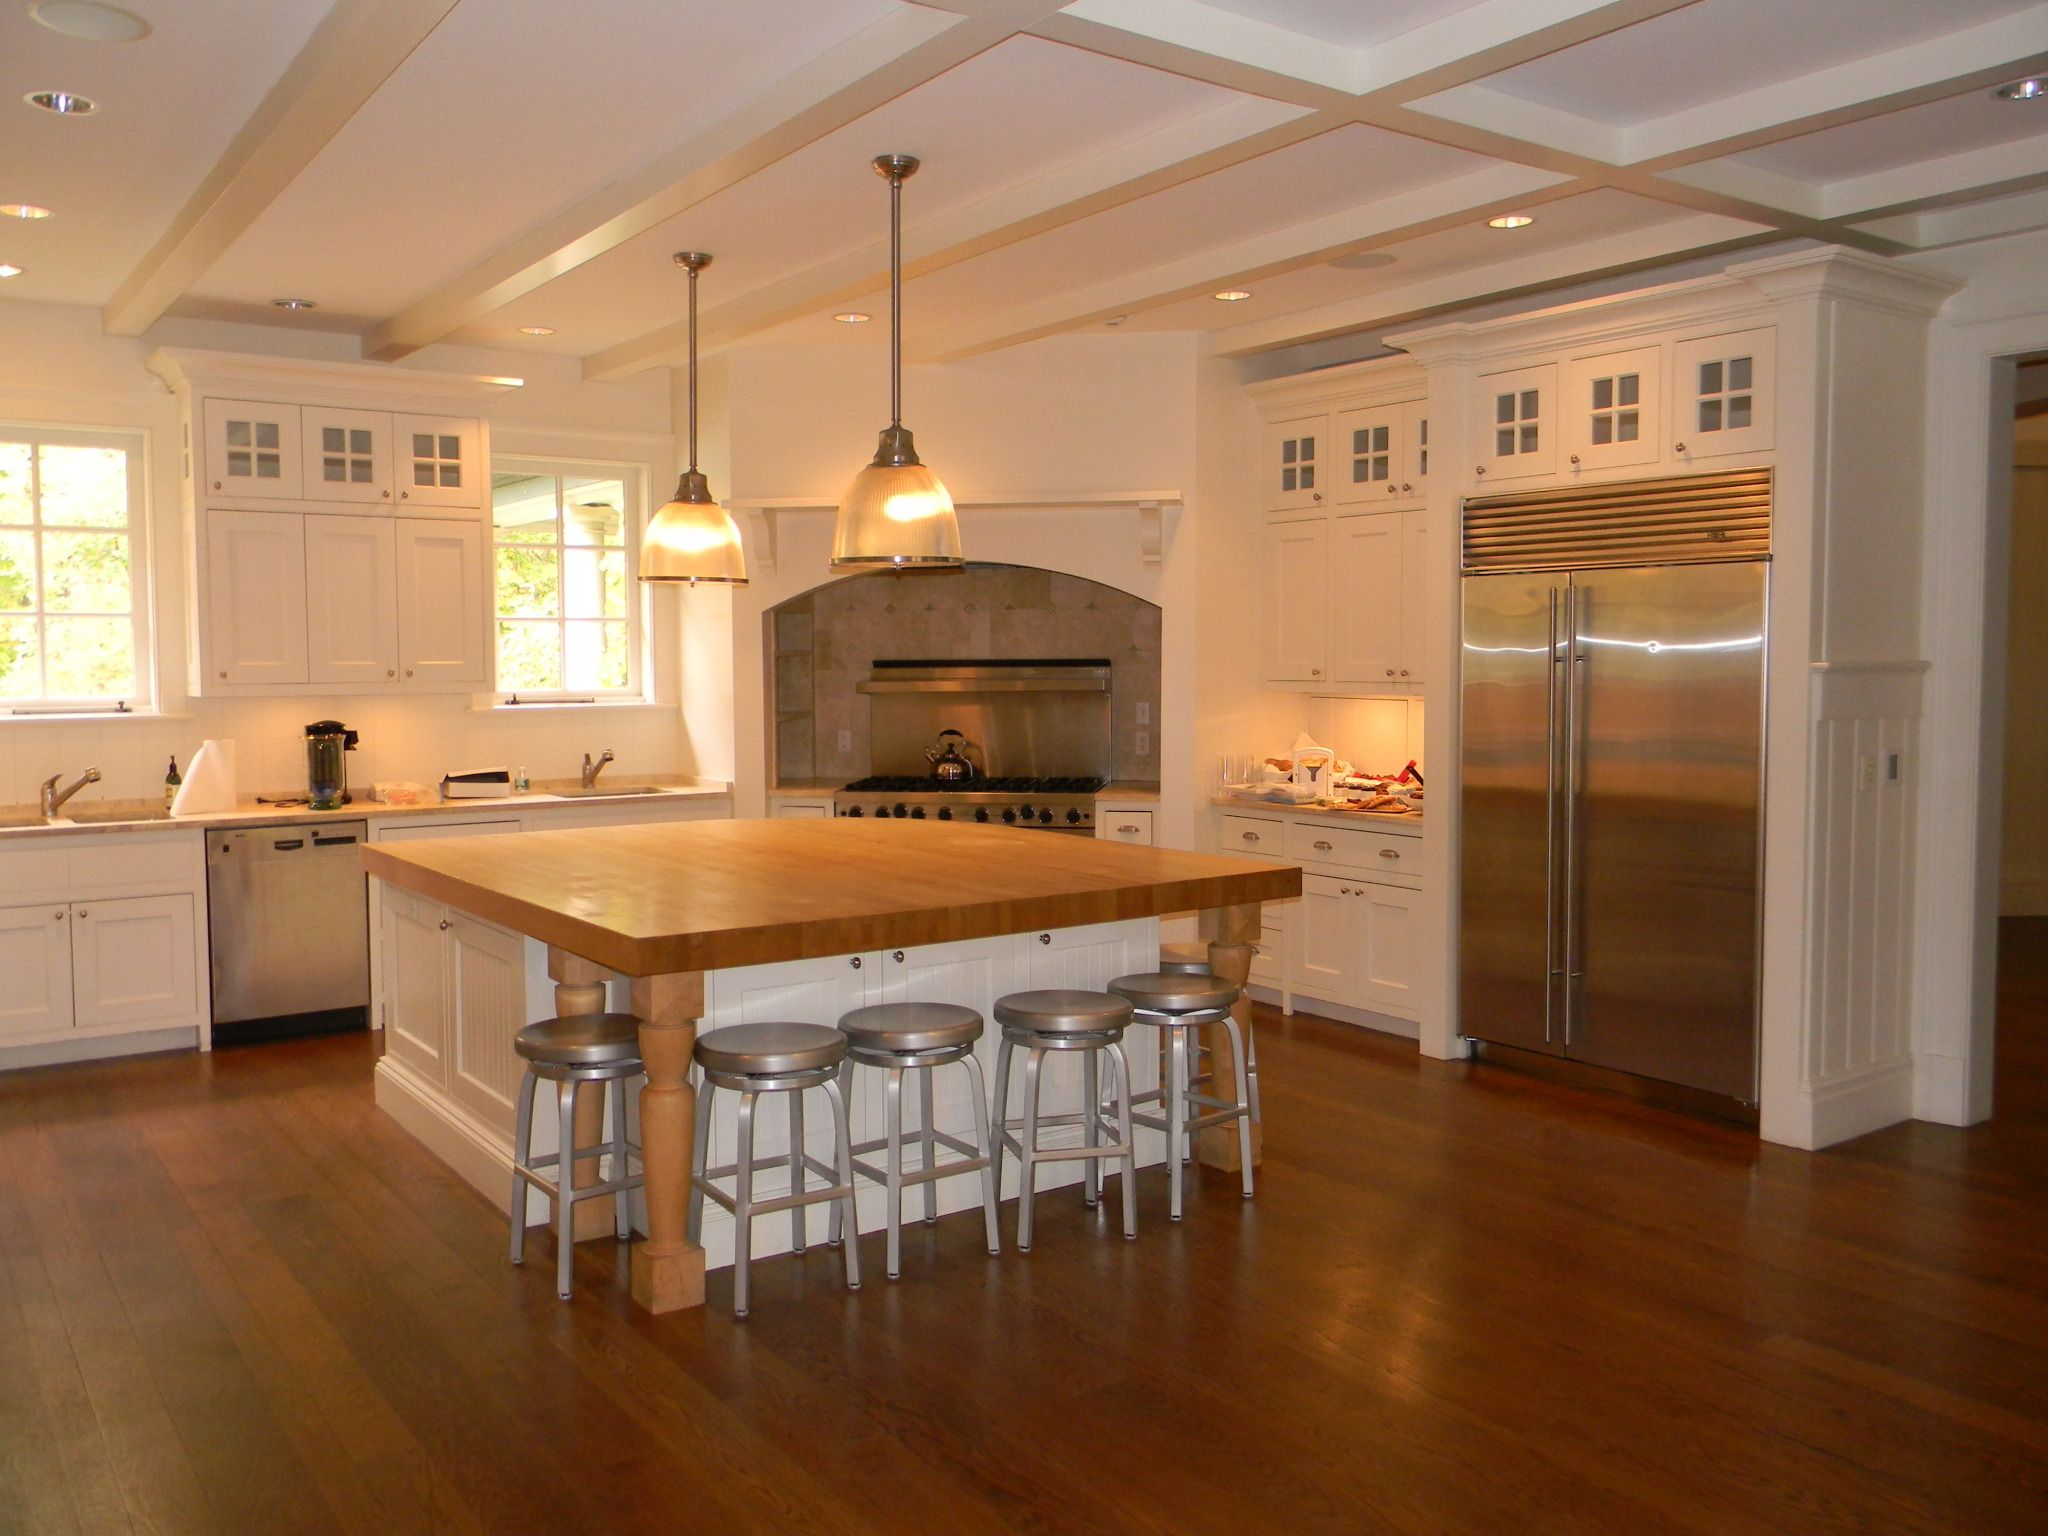 Kitchen Butlers Pantry Custom Shaker Cabinets Painted White With Glass Door Fronts